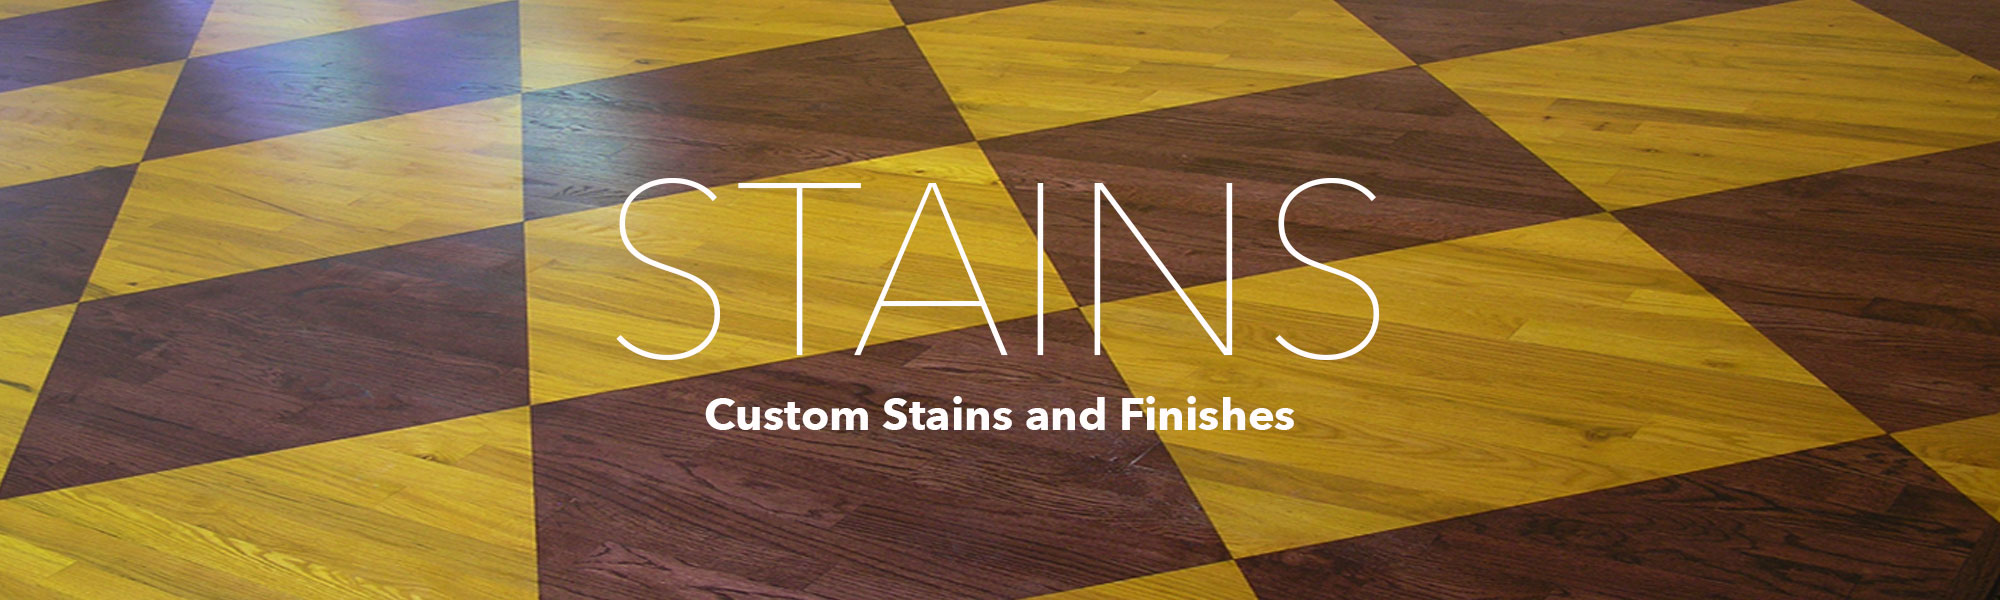 Flooring Stains